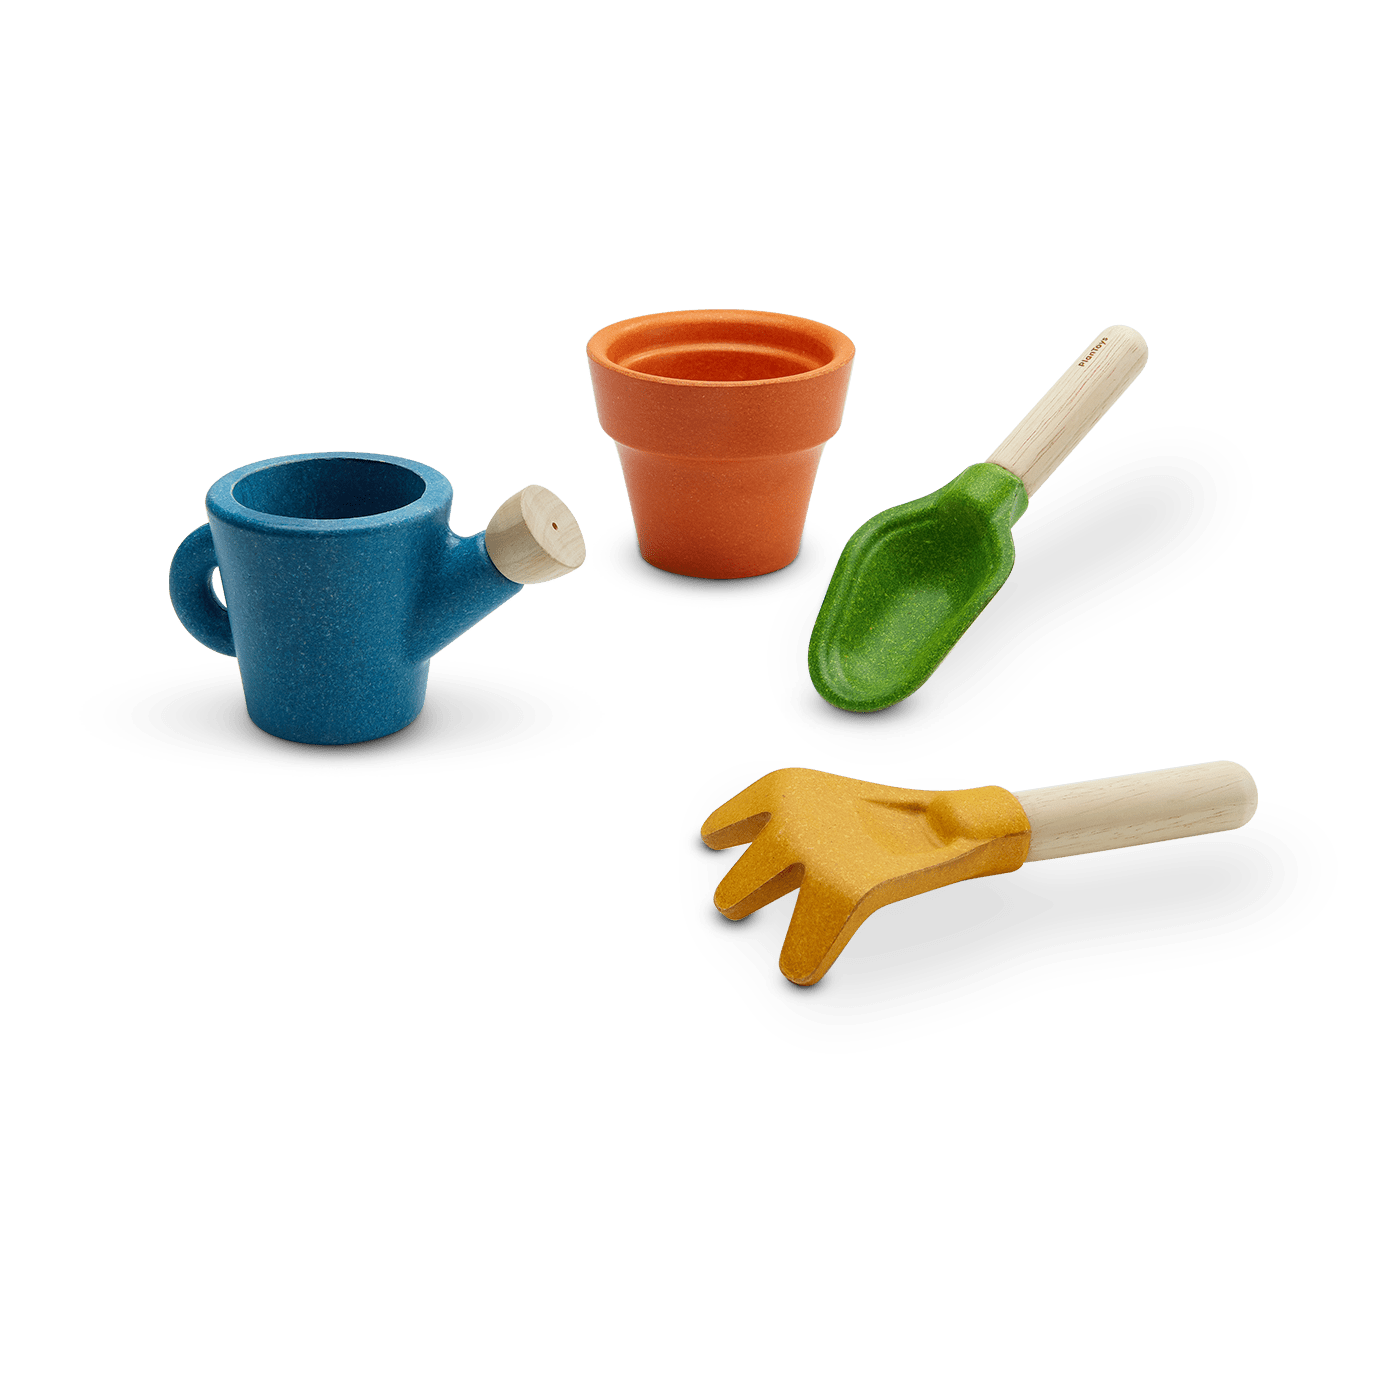 8622_PlanToys_GARDENING_SET_PlanHome™_Social_Imagination_Fine_Motor_Coordination_Language_and_Communications_3yrs_Wooden_toys_Education_toys_Safety_Toys_Non-toxic_0.png